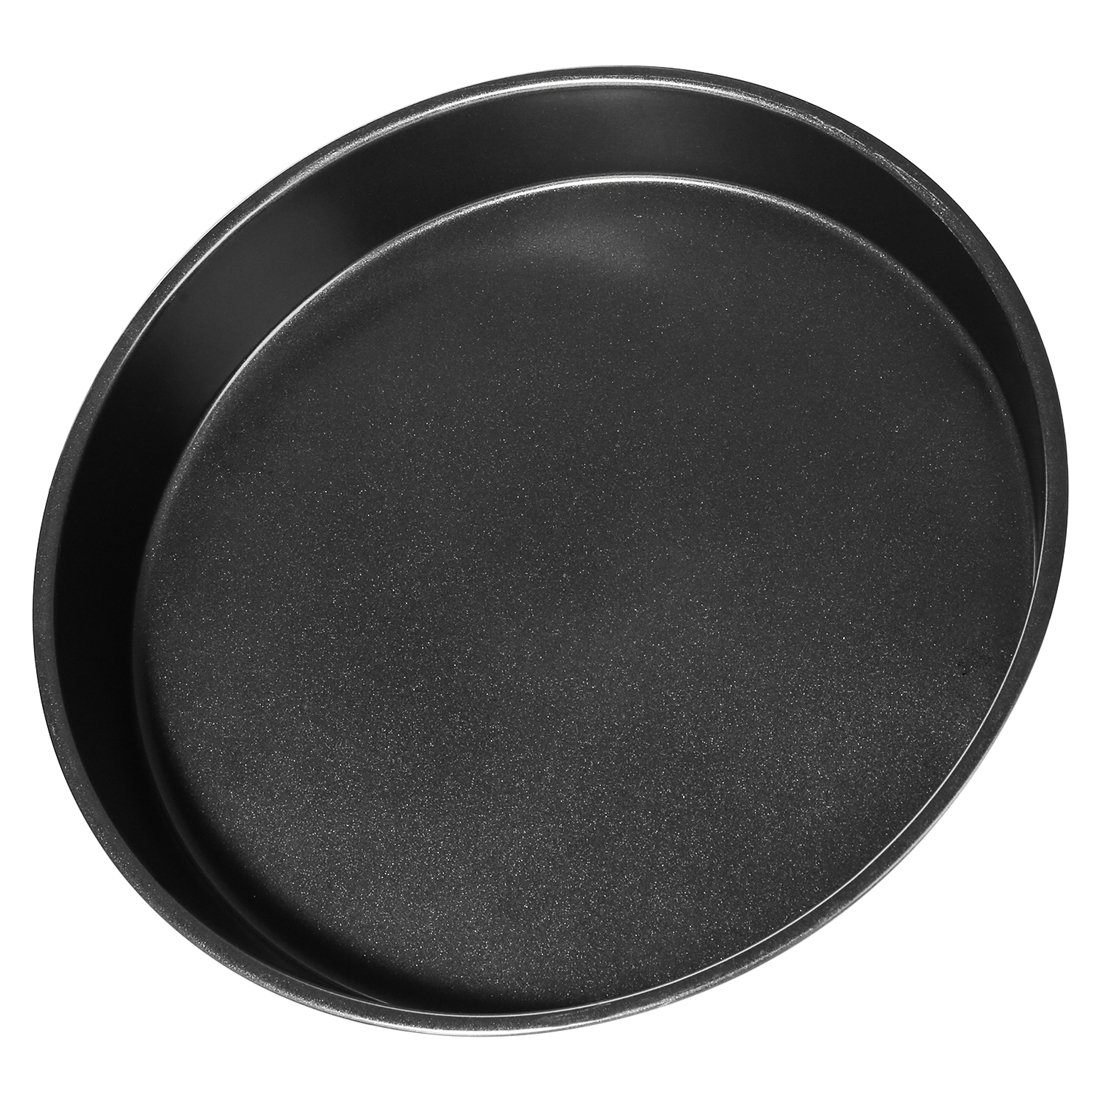 Pizza Pan Non Stick 11 Inch Round Pizza Tray Carbon Steel Bakeware Deep Dish Baking Pan